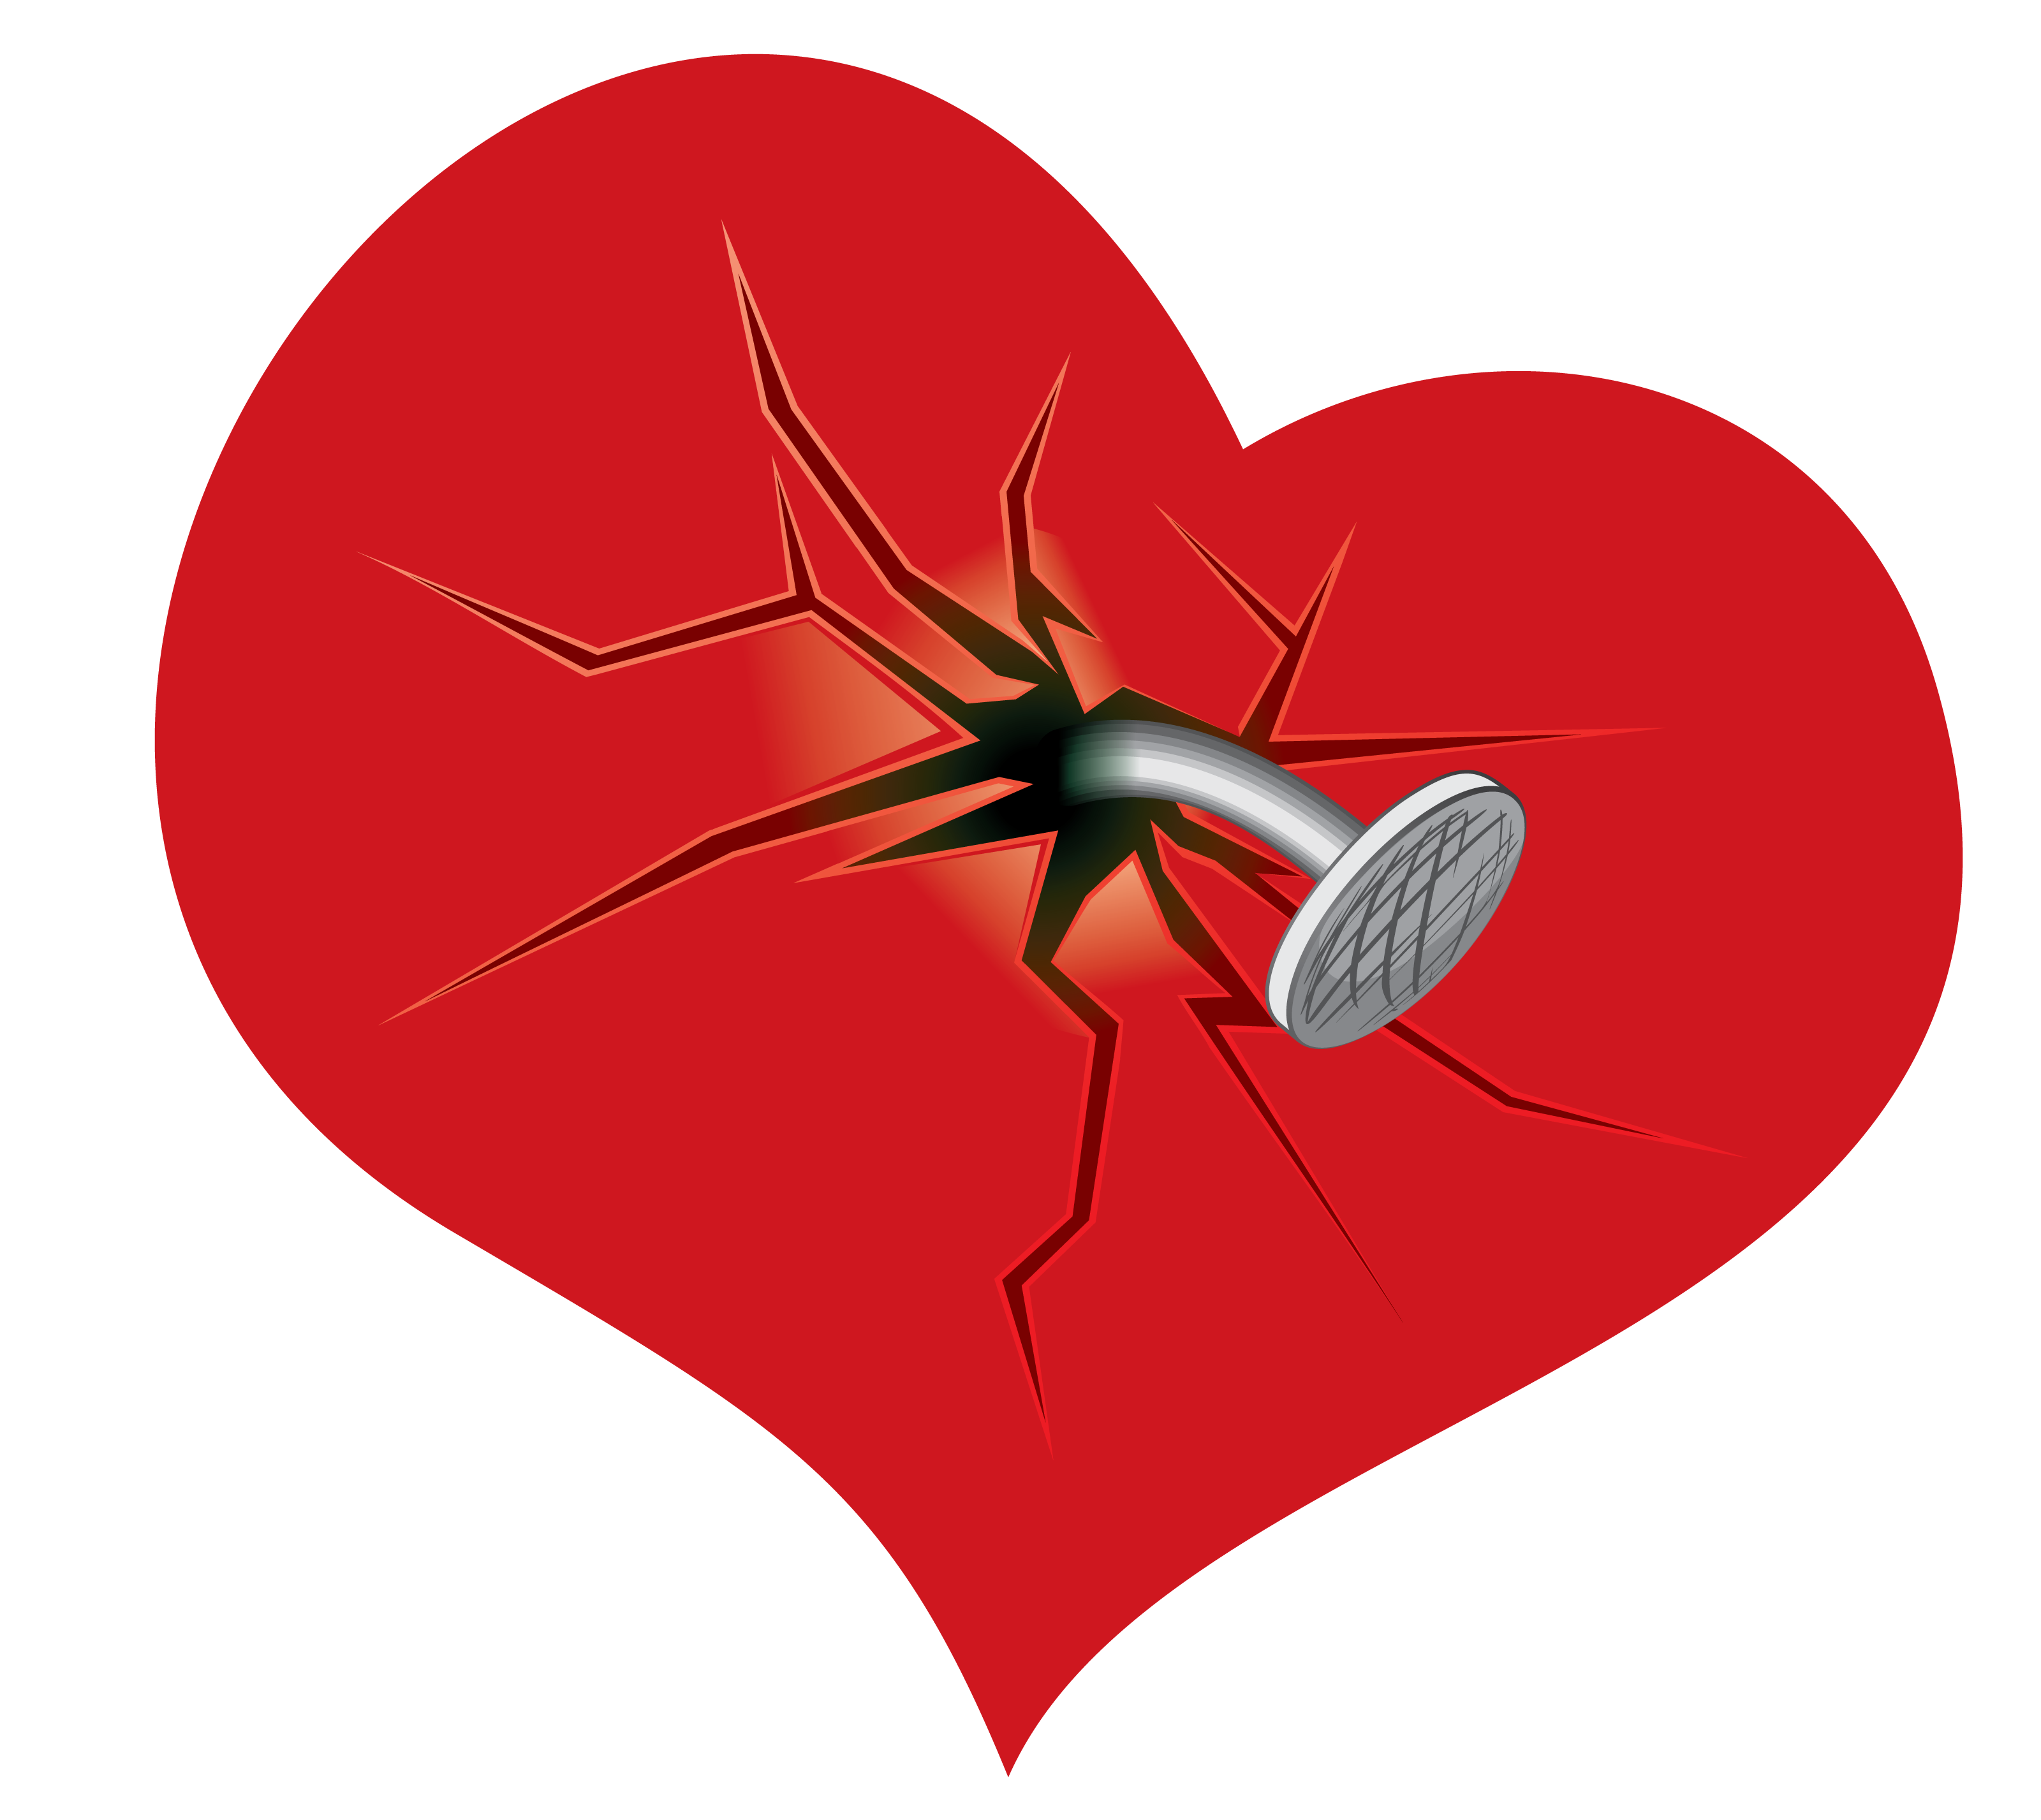 Heart break clipart image royalty free Broken Heart PNG Picture Clipart | Gallery Yopriceville - High ... image royalty free